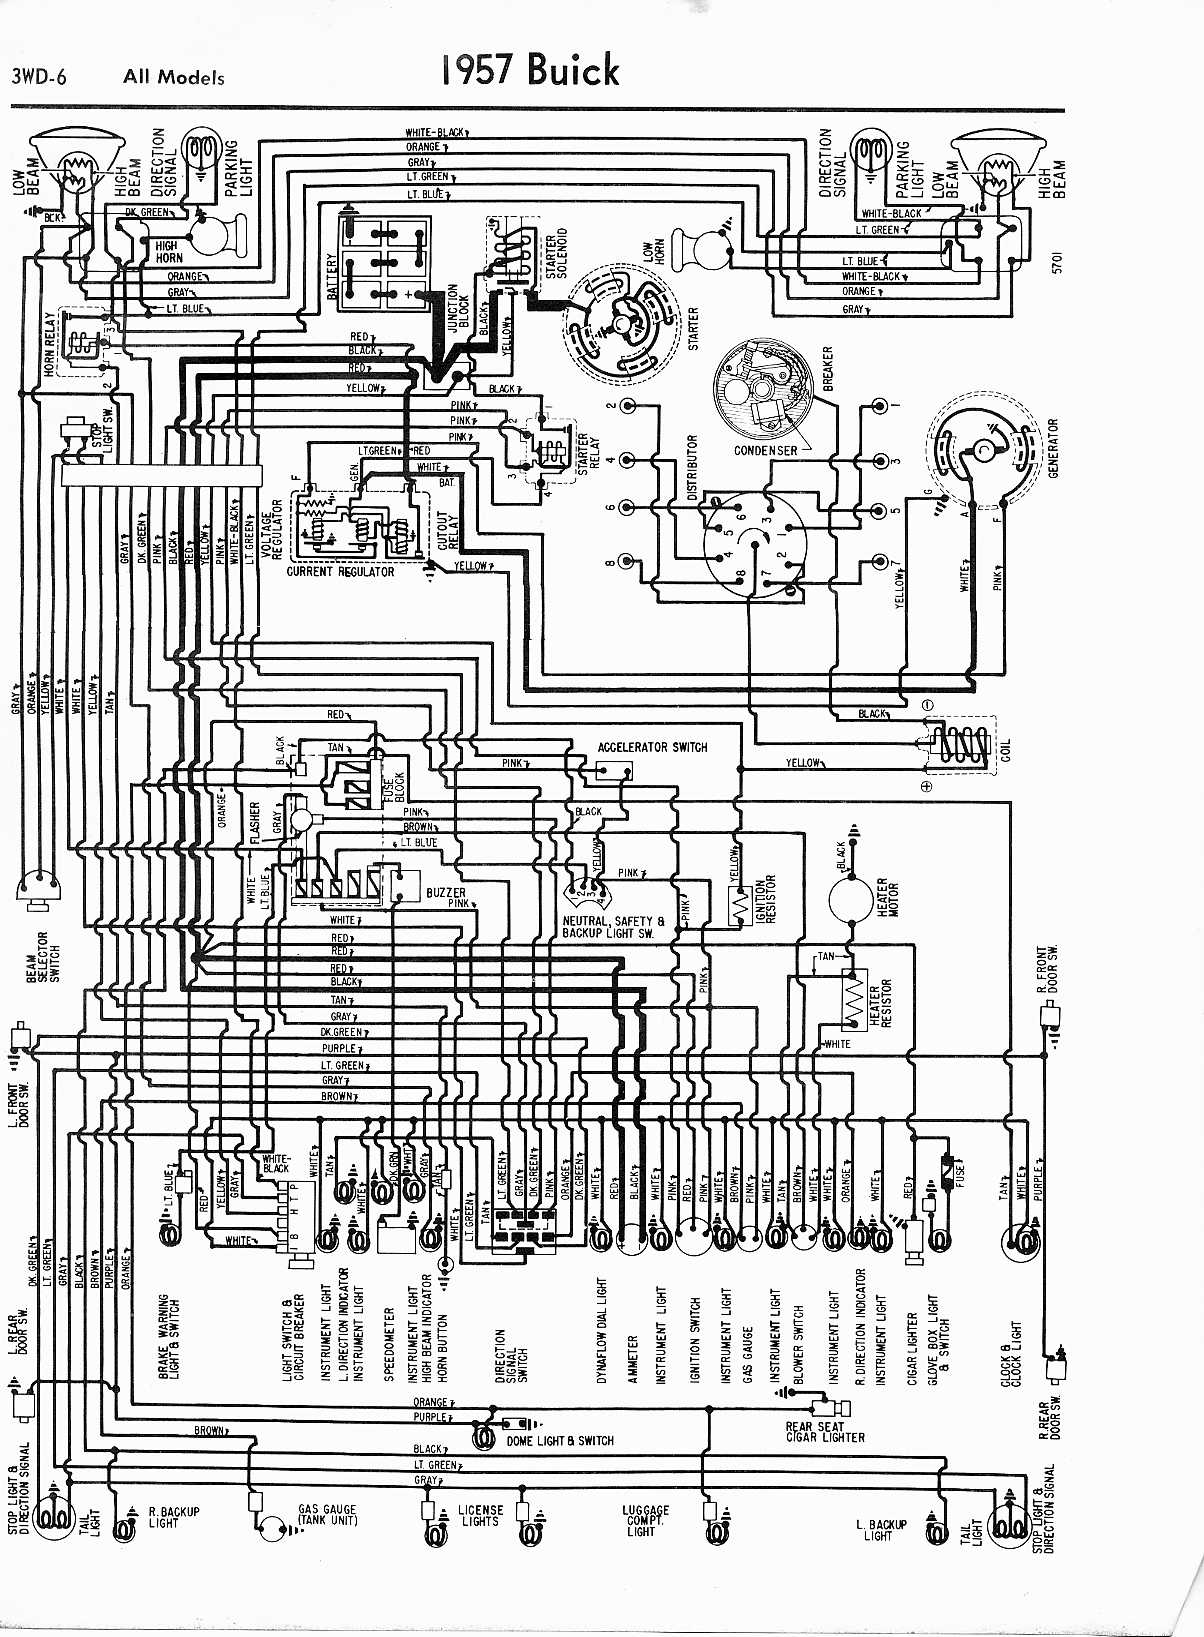 1958 buick wiring schematic free download wiring diagrams rh showtheart co 1996 Buick Roadmaster Custom 1996 Buick Roadmaster Interior